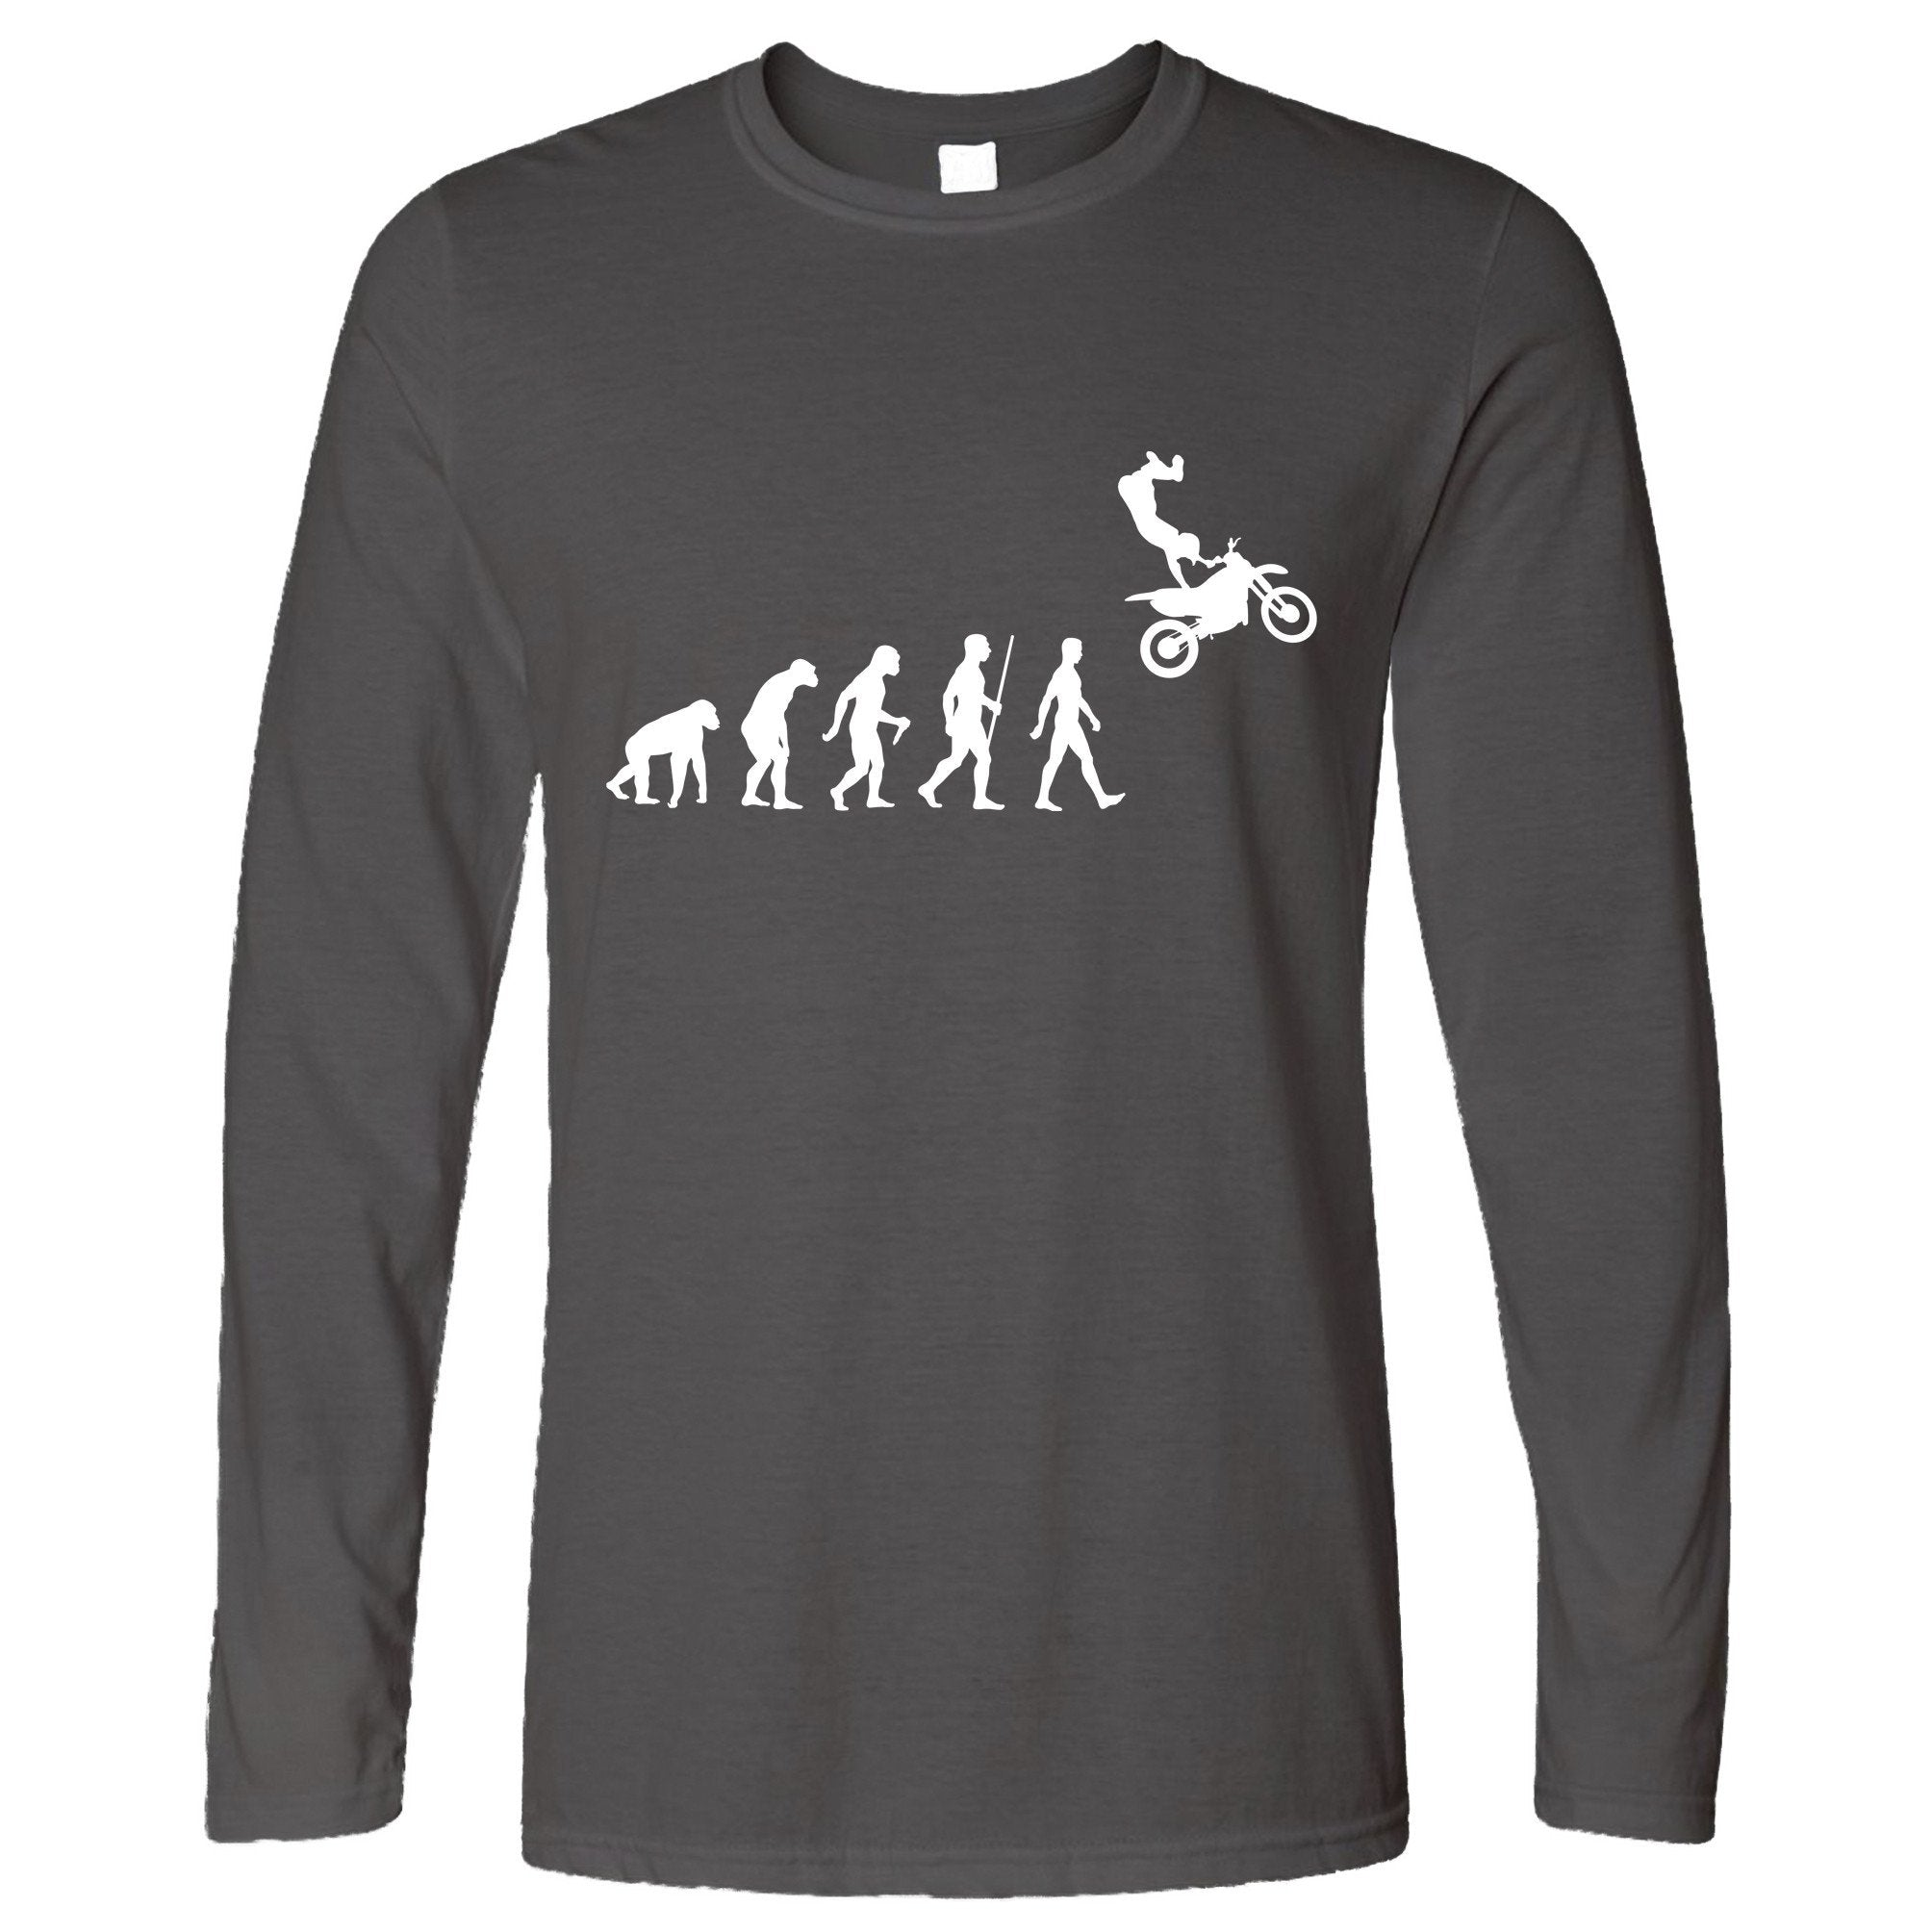 Sports Long Sleeve The Evolution Of Motocross Jumping T-Shirt